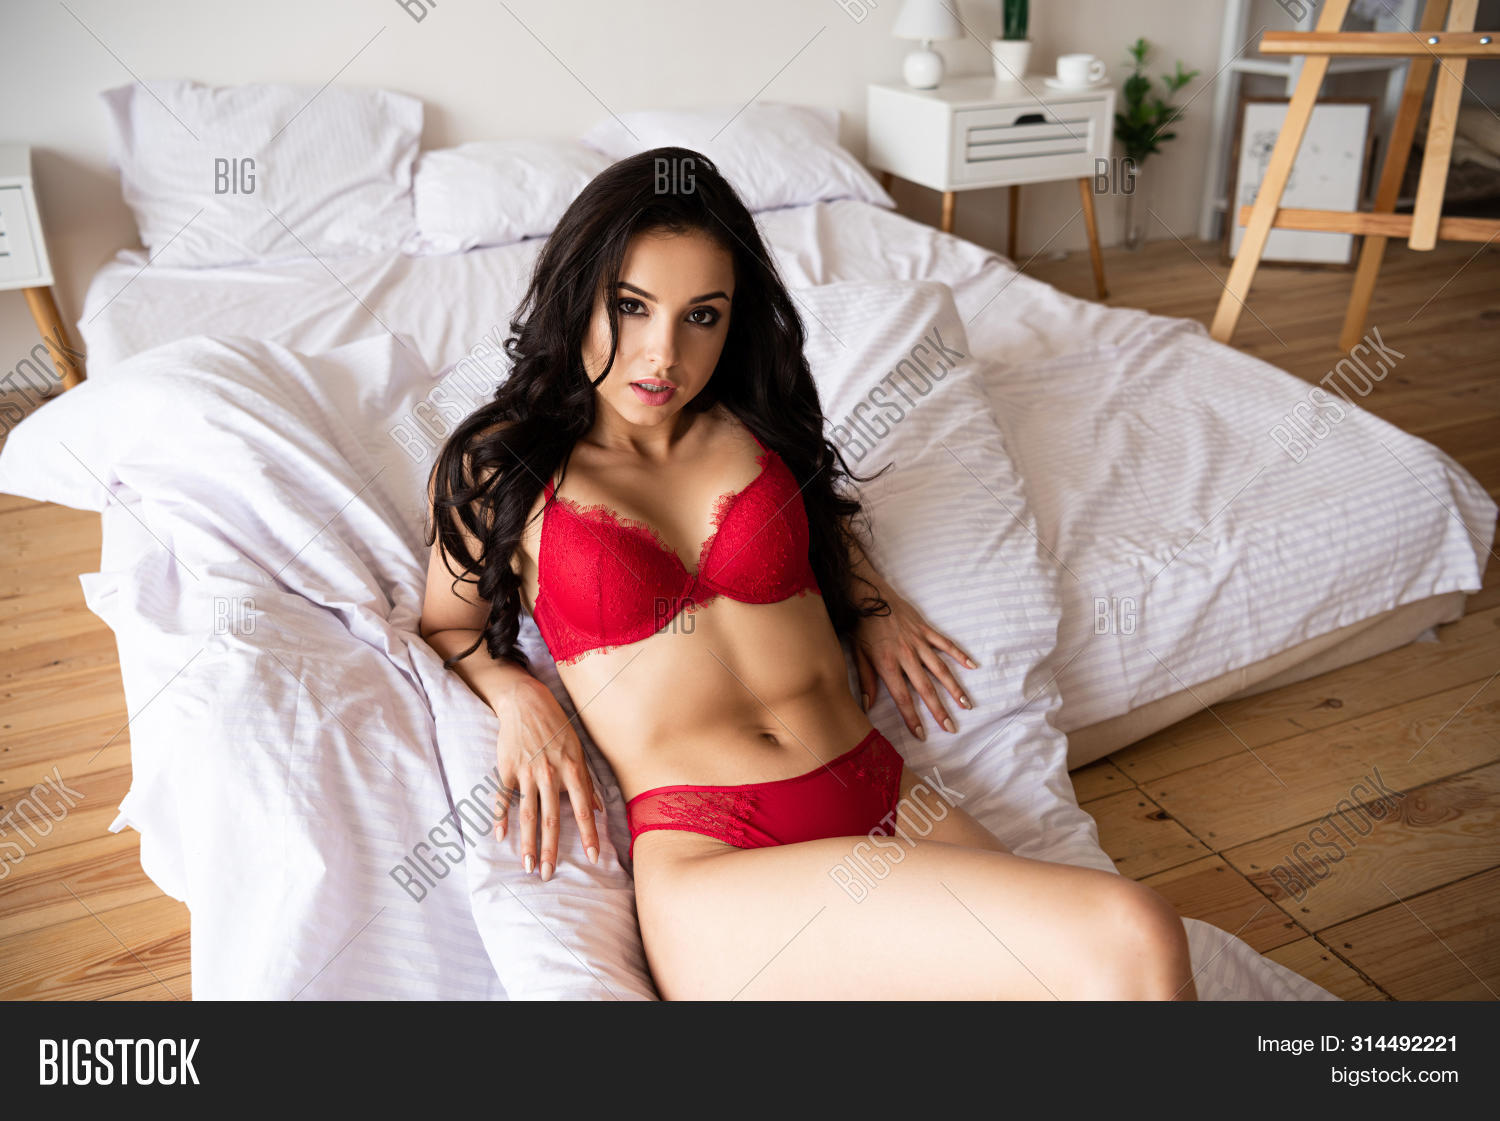 Girl sexy bed The Best